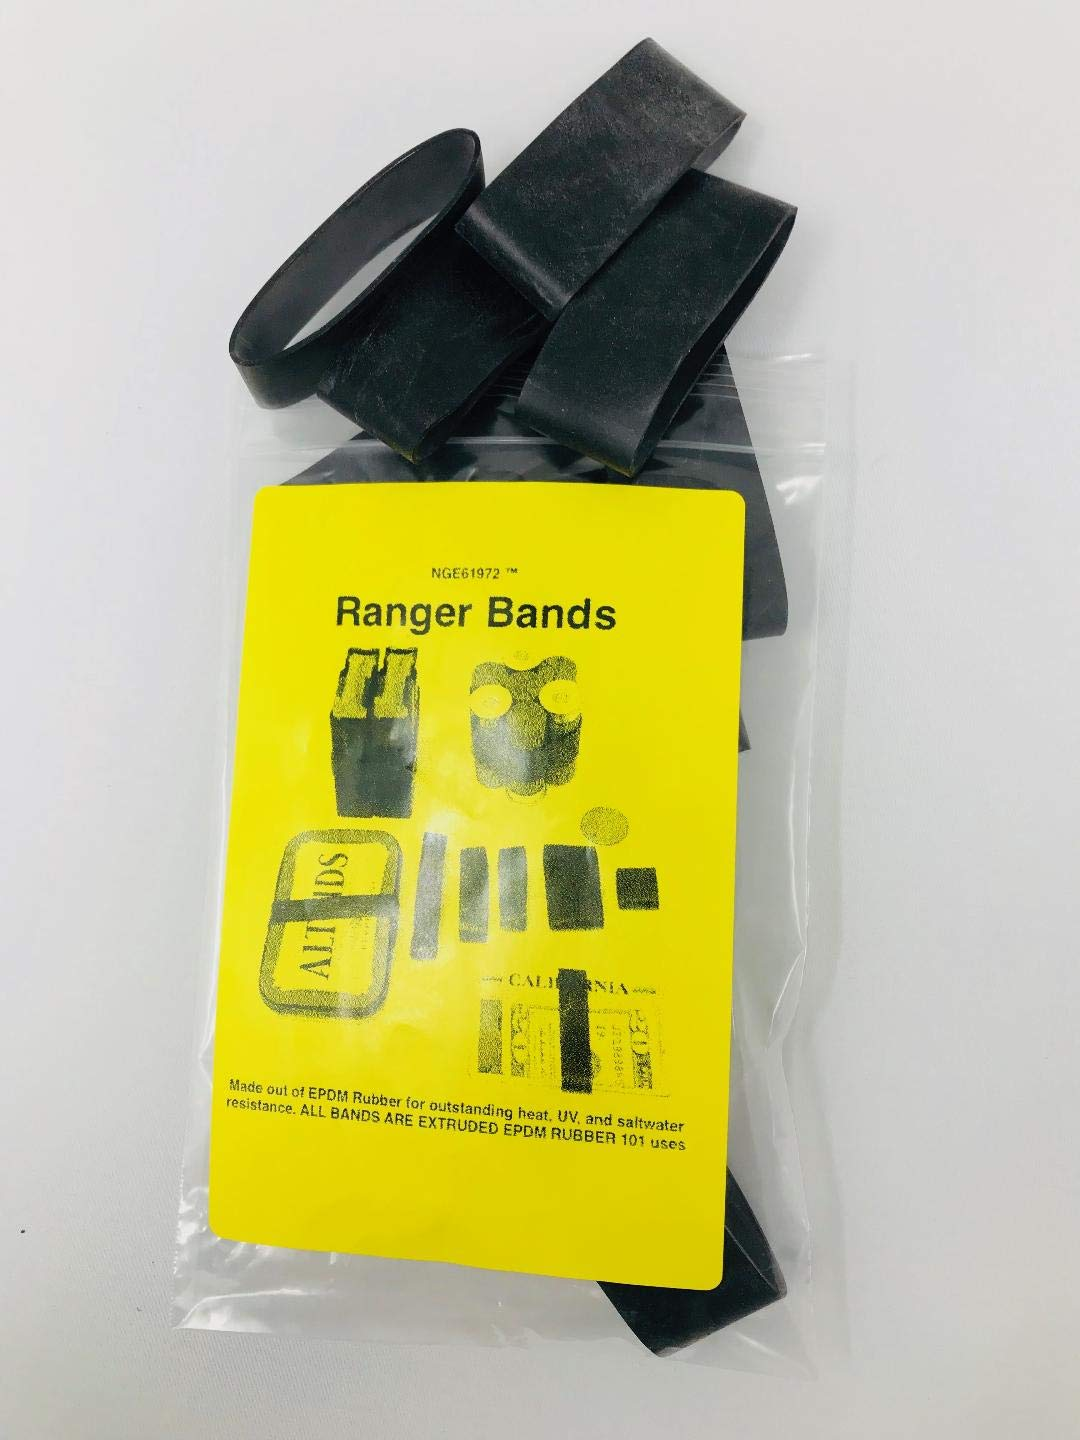 6a60f0933441 Amazon.com  NGE61972 Ranger Bands Large Wide (18 Count) Made from EPDM  Rubber for Survival and Strapping Gear Made in The USA  Sports   Outdoors